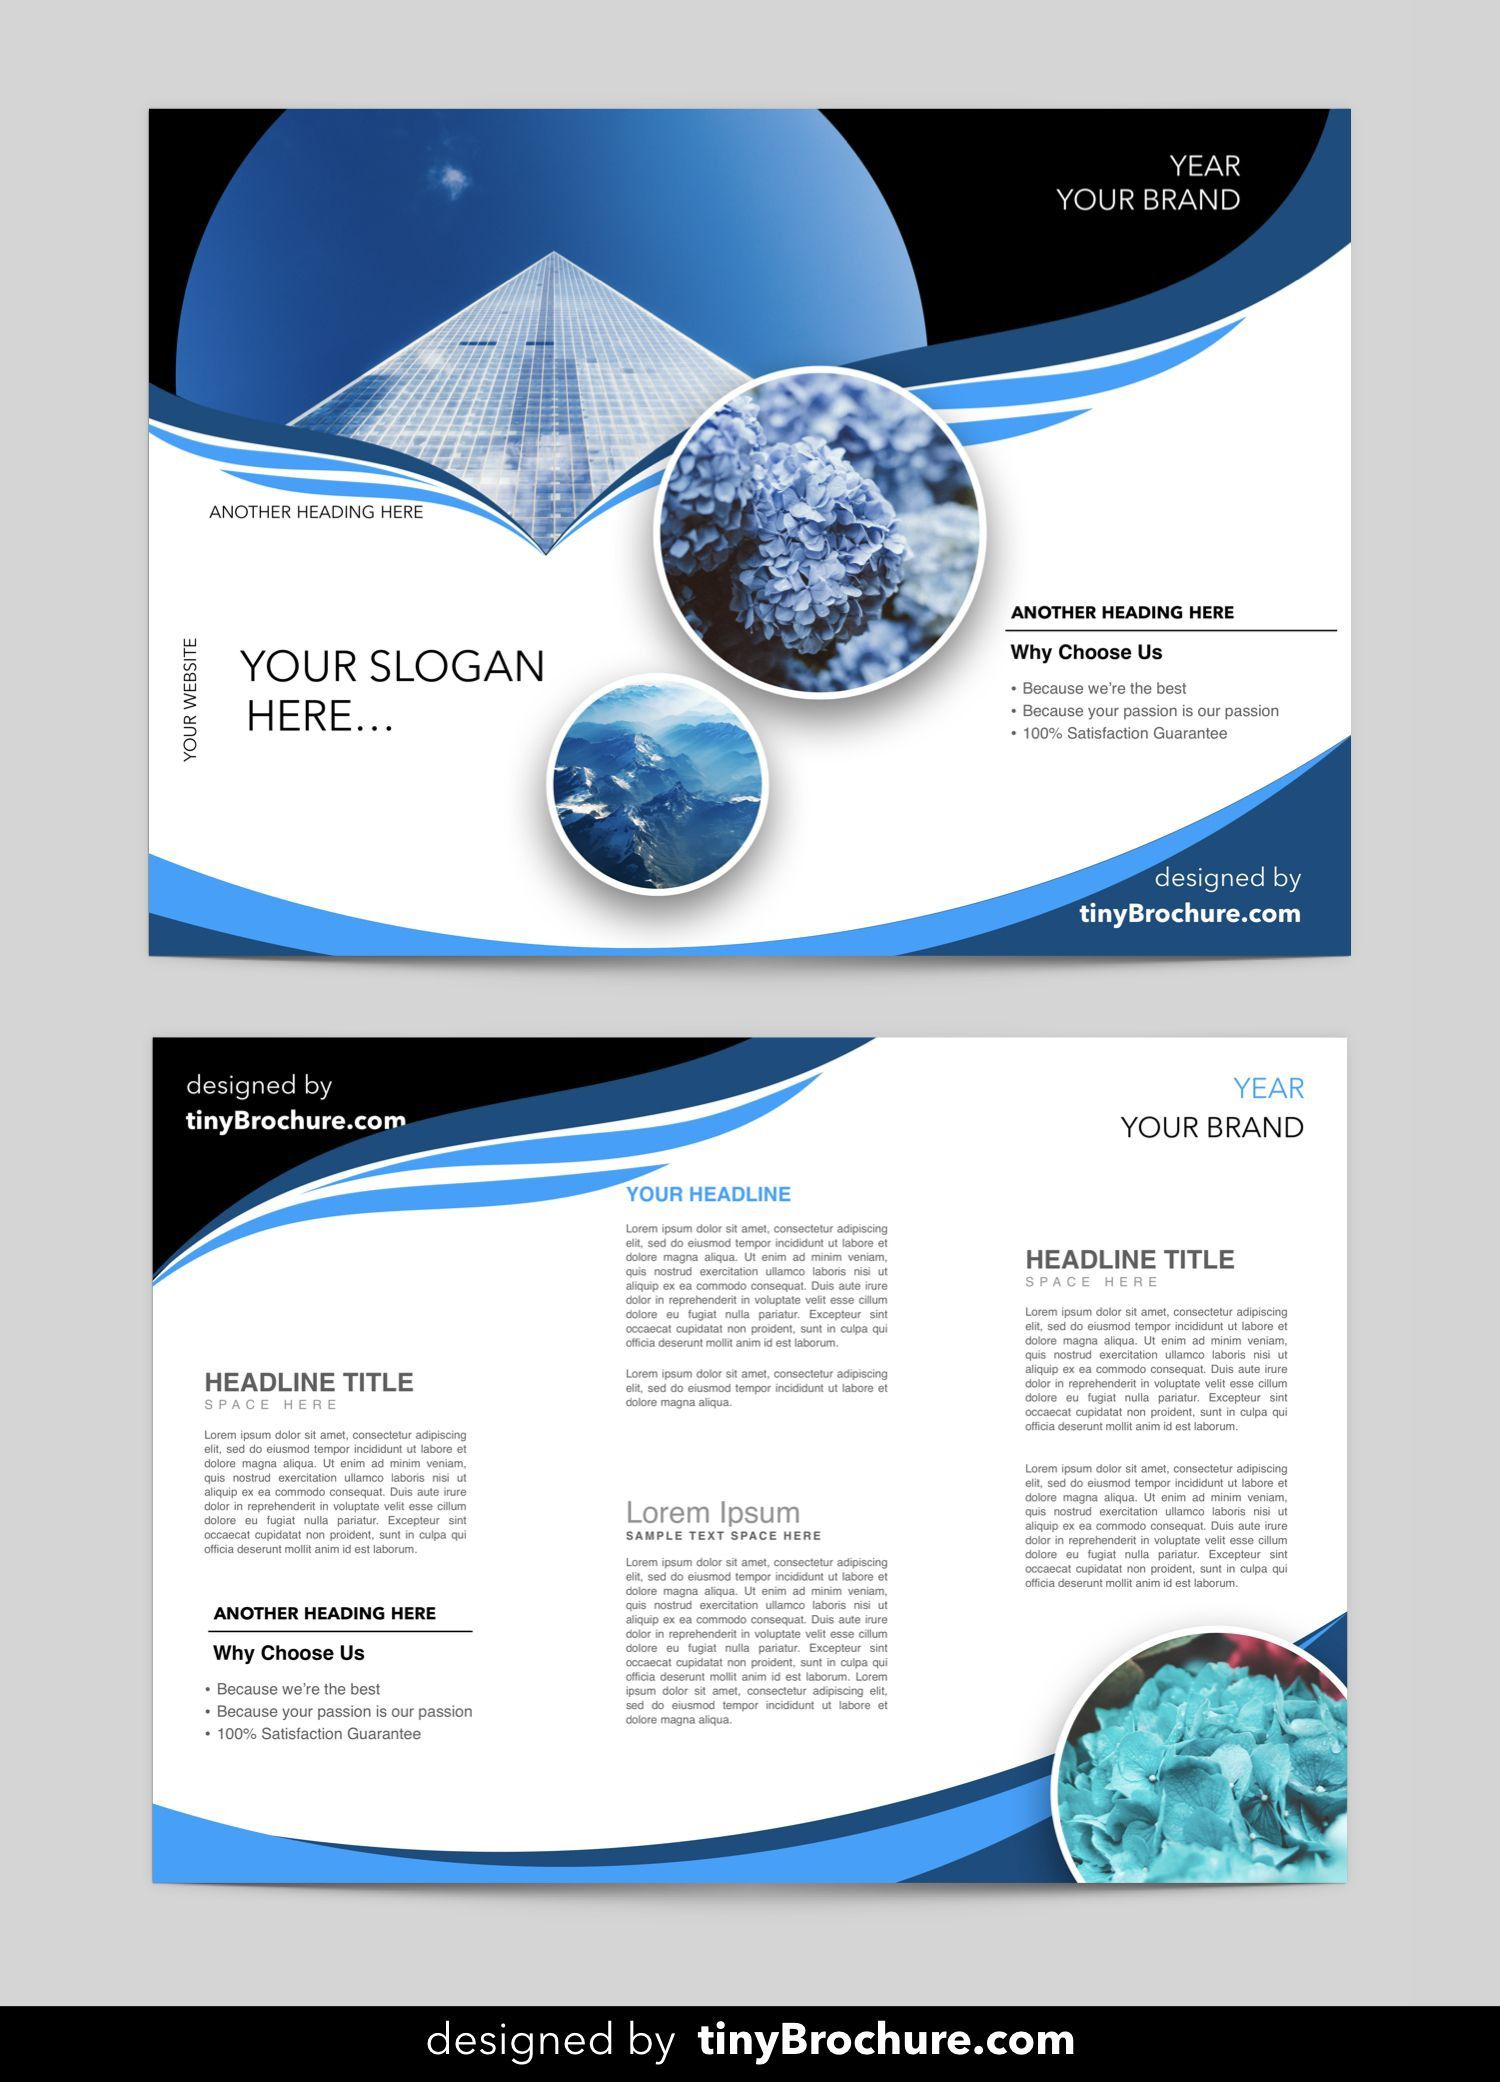 003 Wonderful Download Brochure Template For Word 2007 High Definition Full